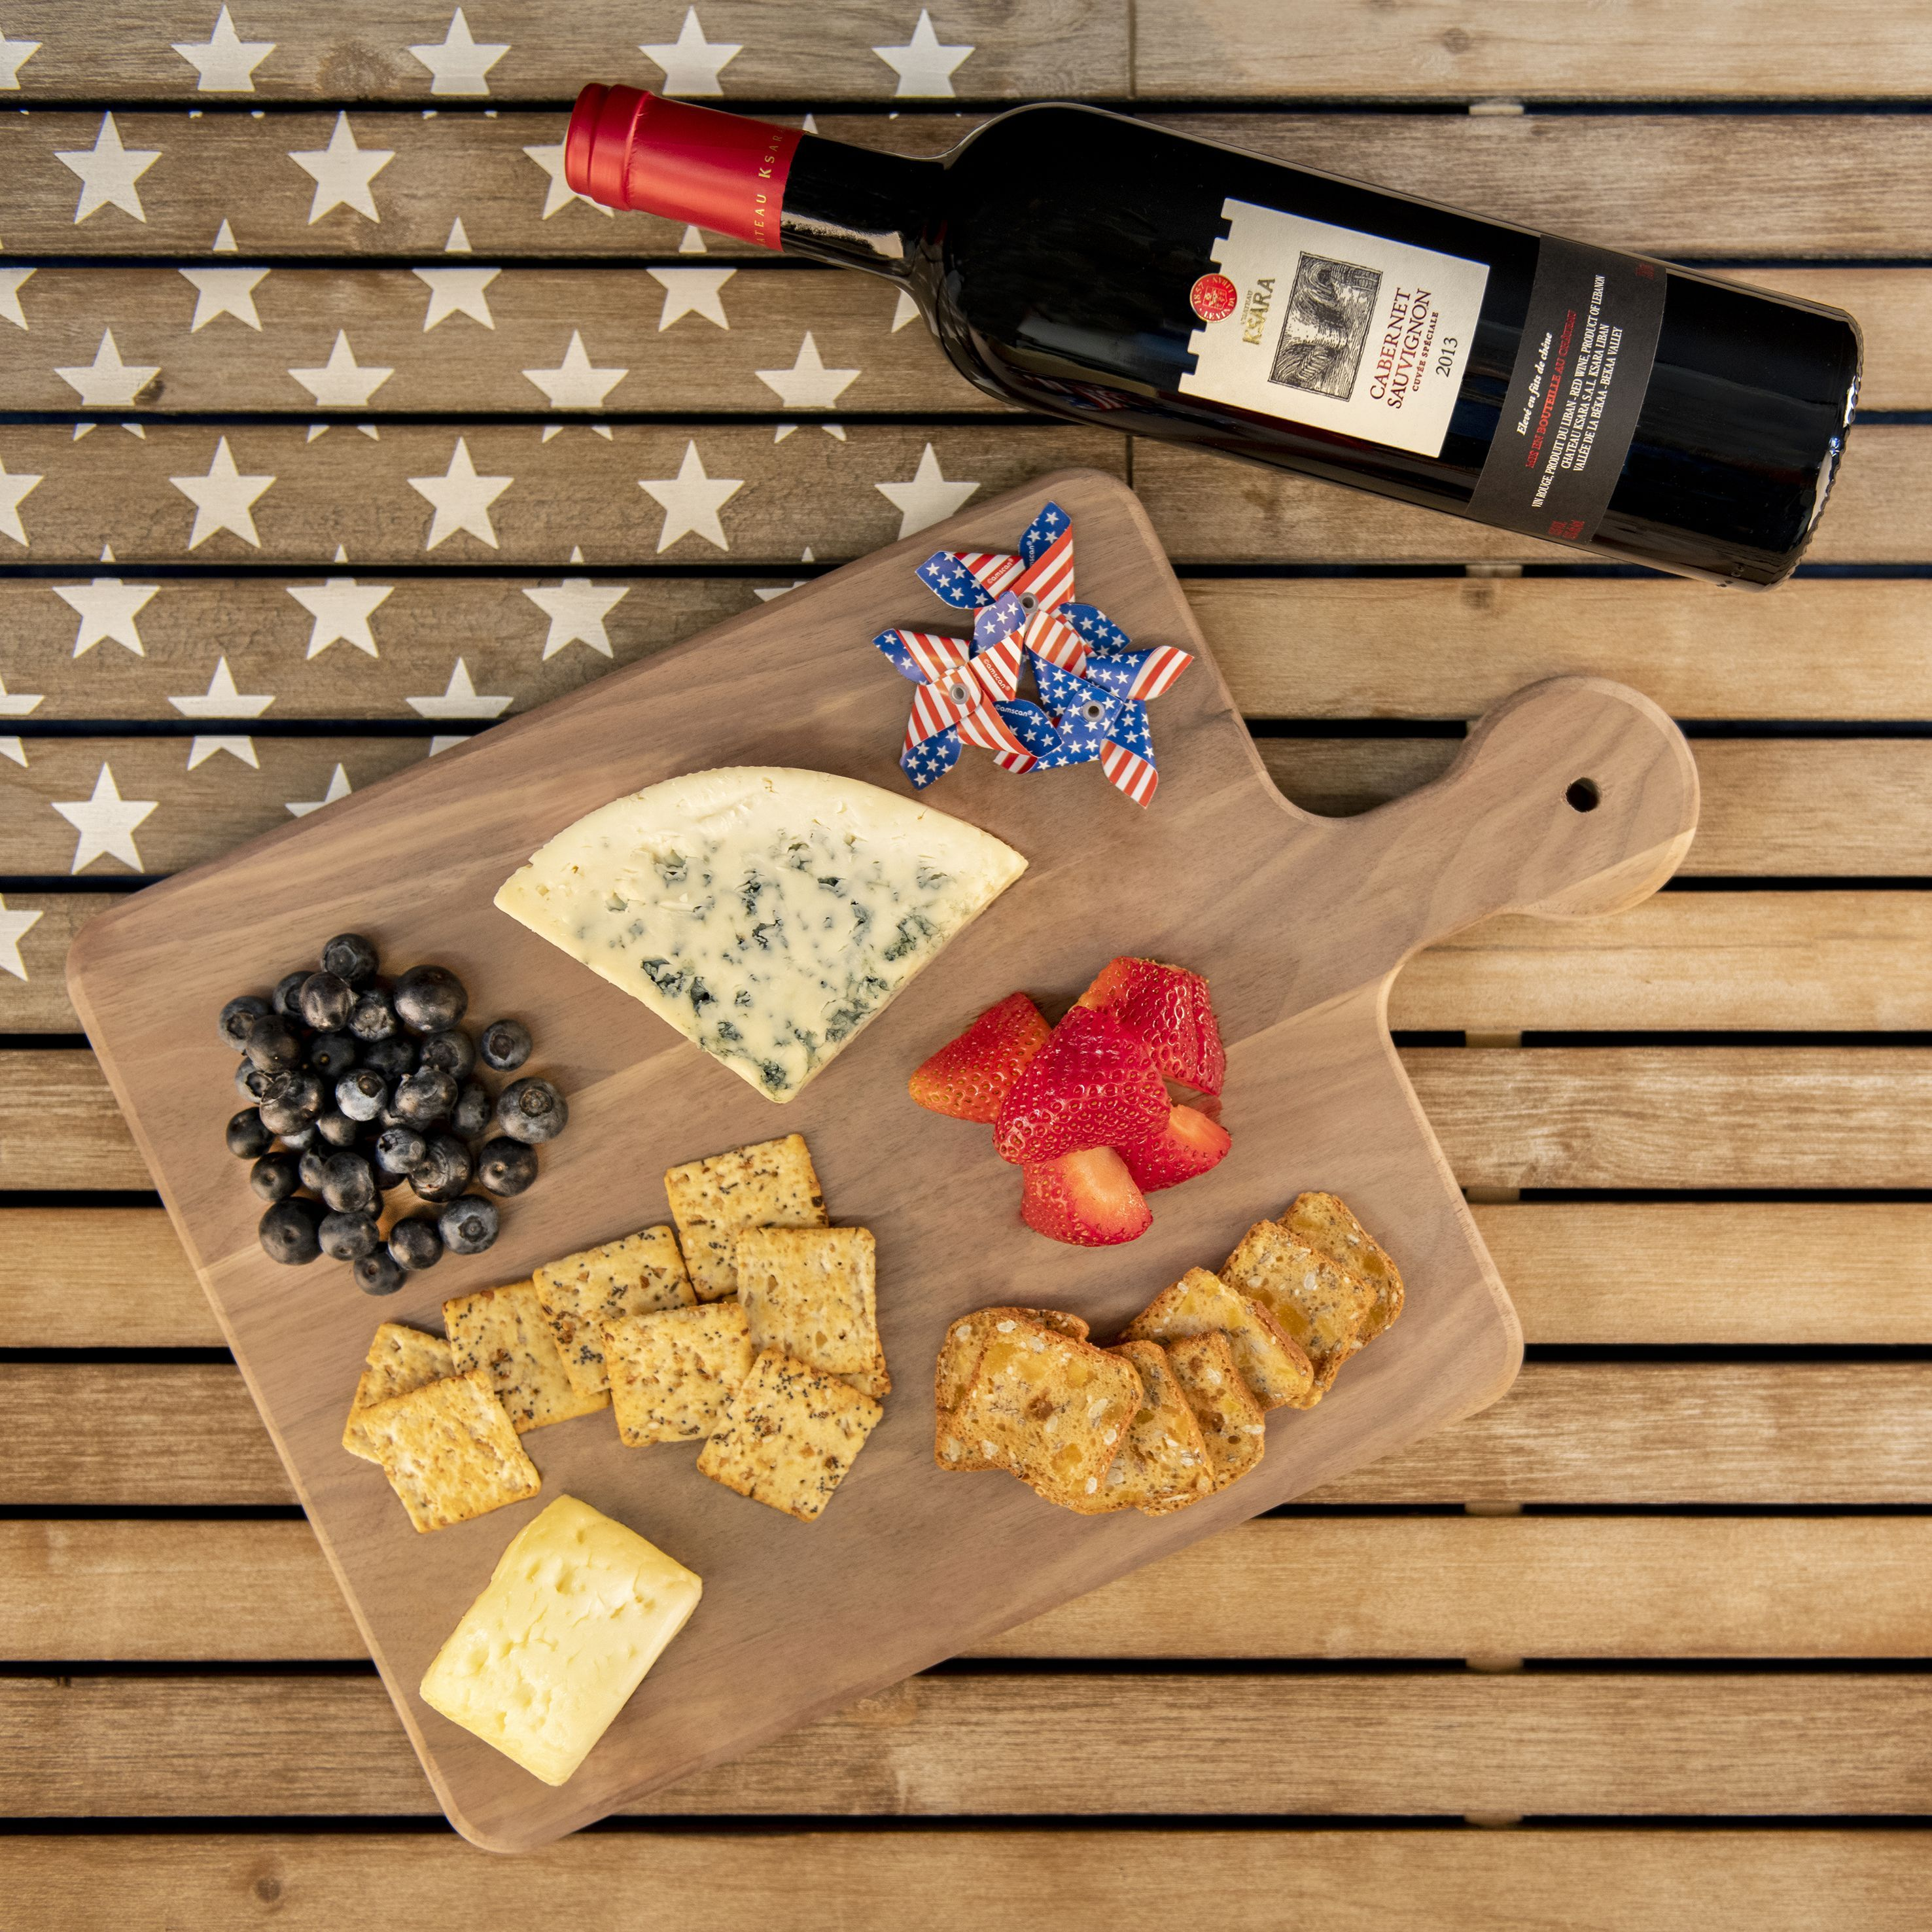 Red White & Blue Party Platter #labordayfoodideas memorial day charcuterie board, memorial day party, chateau ksara winery, lebanese wine, red wine, cabernet sauvignon, cheese board, 4th of july party ideas, 4th of july food ideas, red white and blue theme, charcuterie board design, labor day party #labordayfoodideas